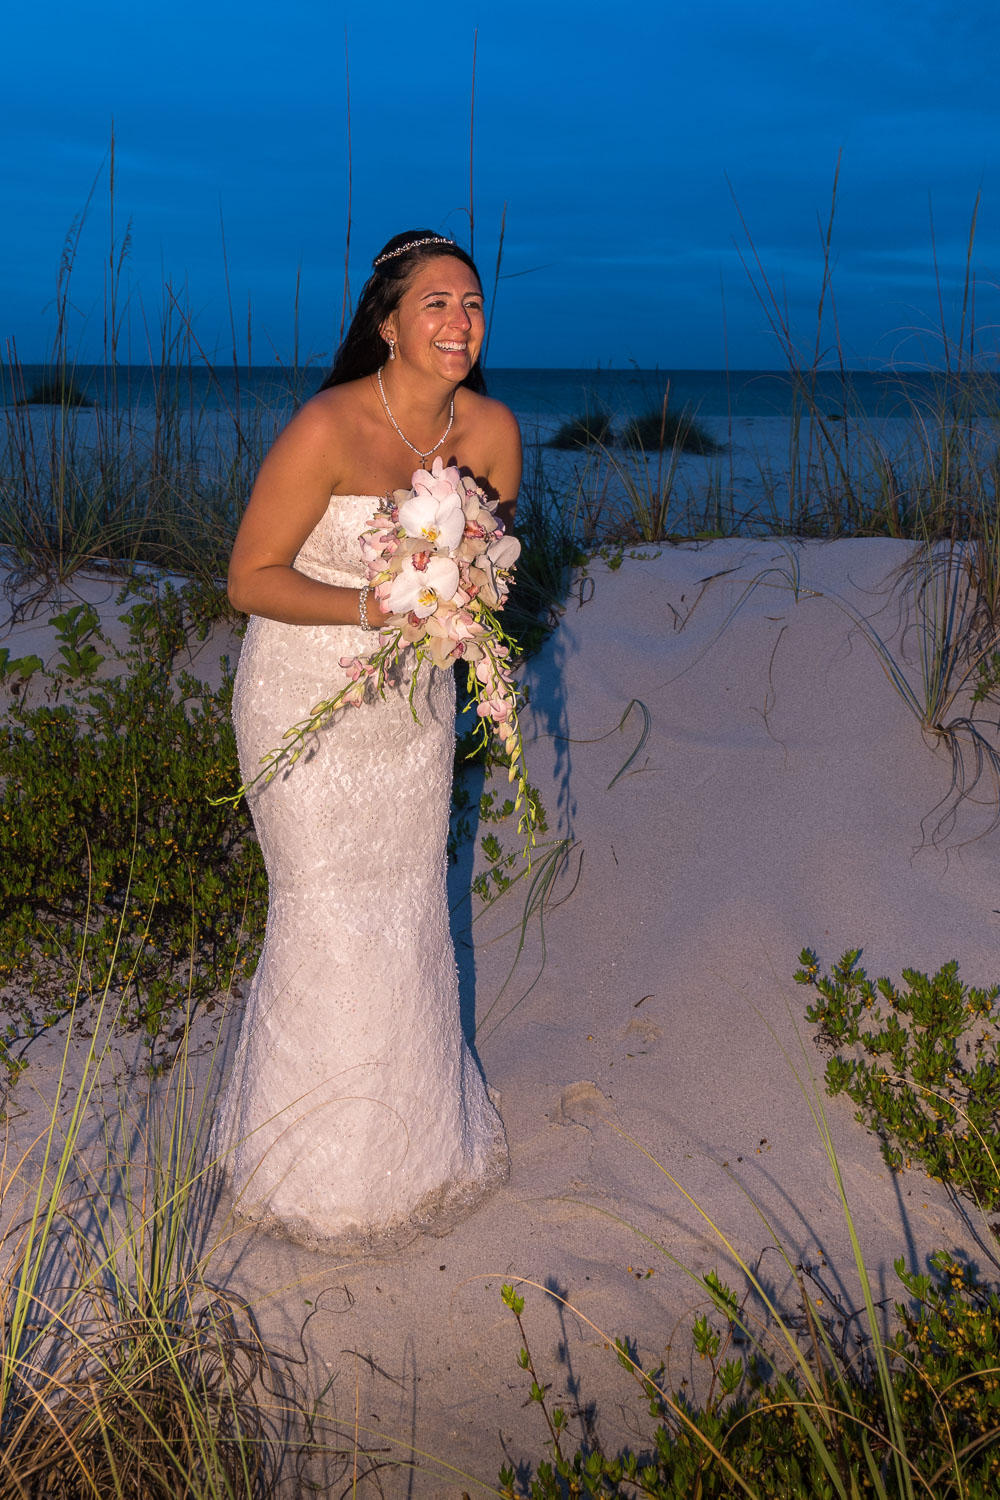 Steve McCarthy Photography: Premier SWFL Wedding Photographer serving all of SWFL,  from Tampa to Naples, Fort Myers Beach, Pine Island, Sanibel, Captiva and Marco Island and over to Miami and up to Delray Beach, including: Tampa, Sarasota, Venice, Cape Coral, Fort Myers, Bonita Springs, Naples, Golden Gate, Arcadia, LaBelle, Miami, Fort Lauderdale, Boca Raton and Delray Beach with everywhere in between.